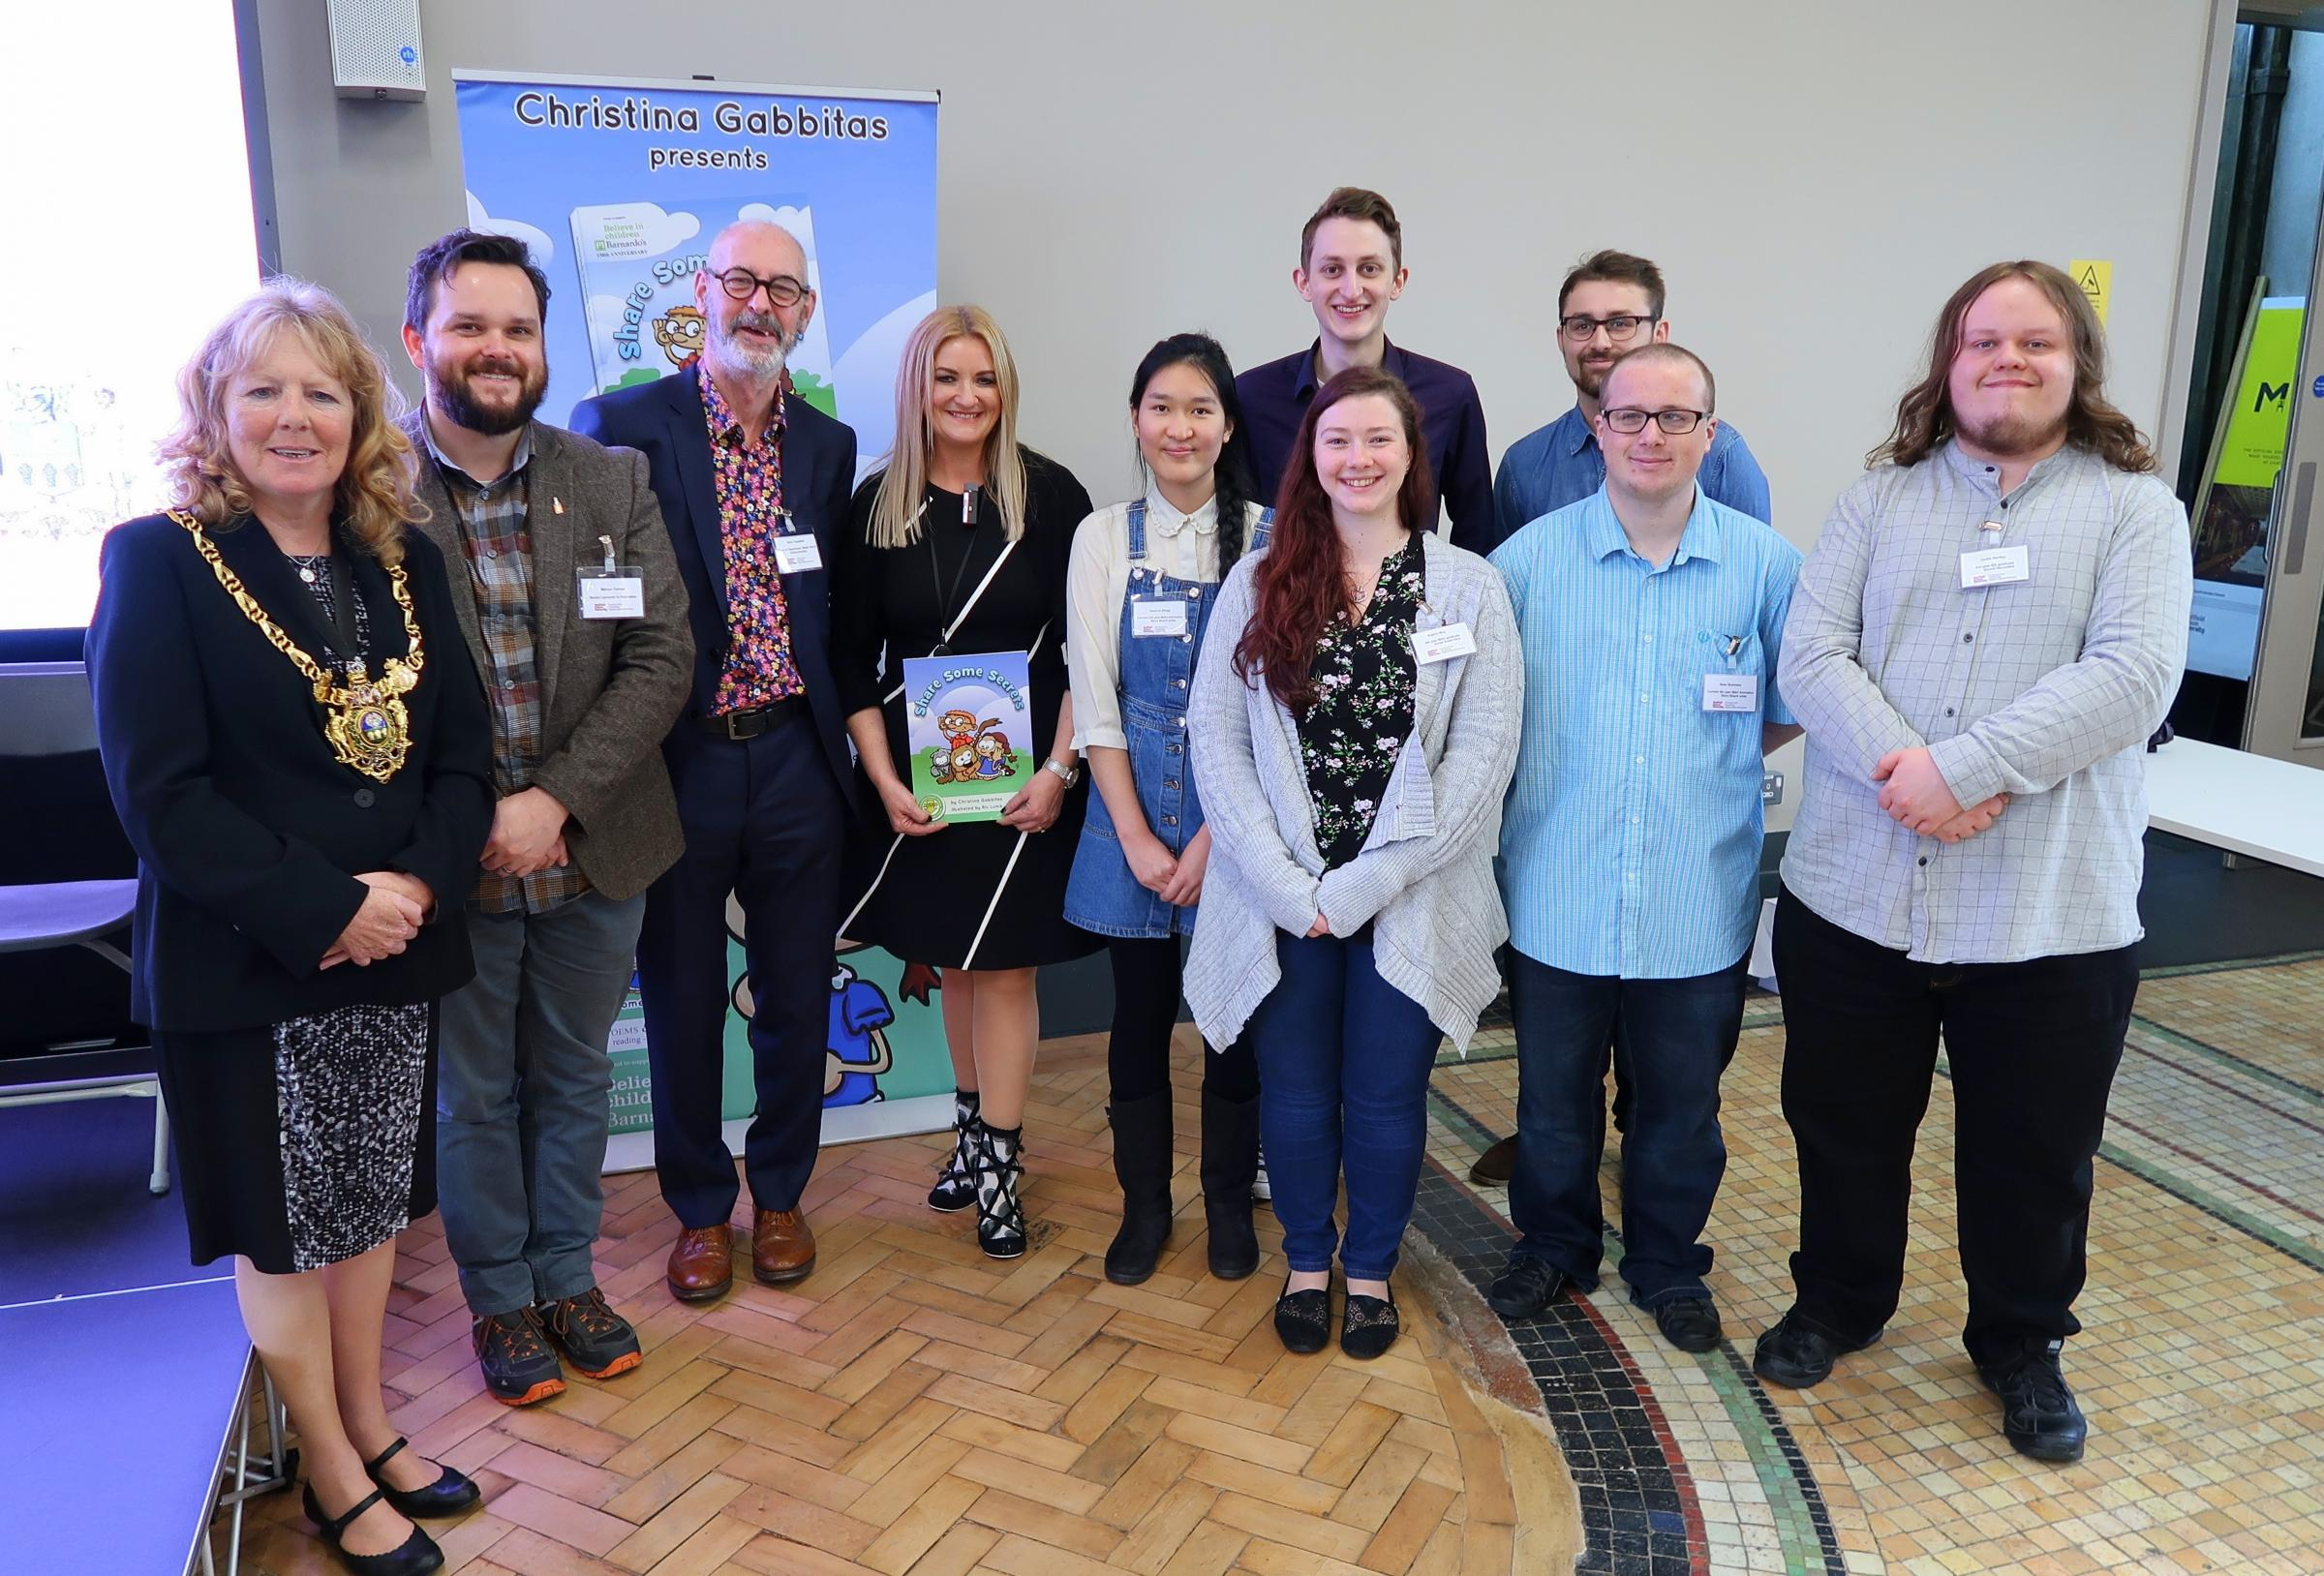 ANIMATED: Christina Gabbitas (centre, holding book), with the team from Sheffield Hallam University and the Lord Mayor of Sheffield at the animation launch.